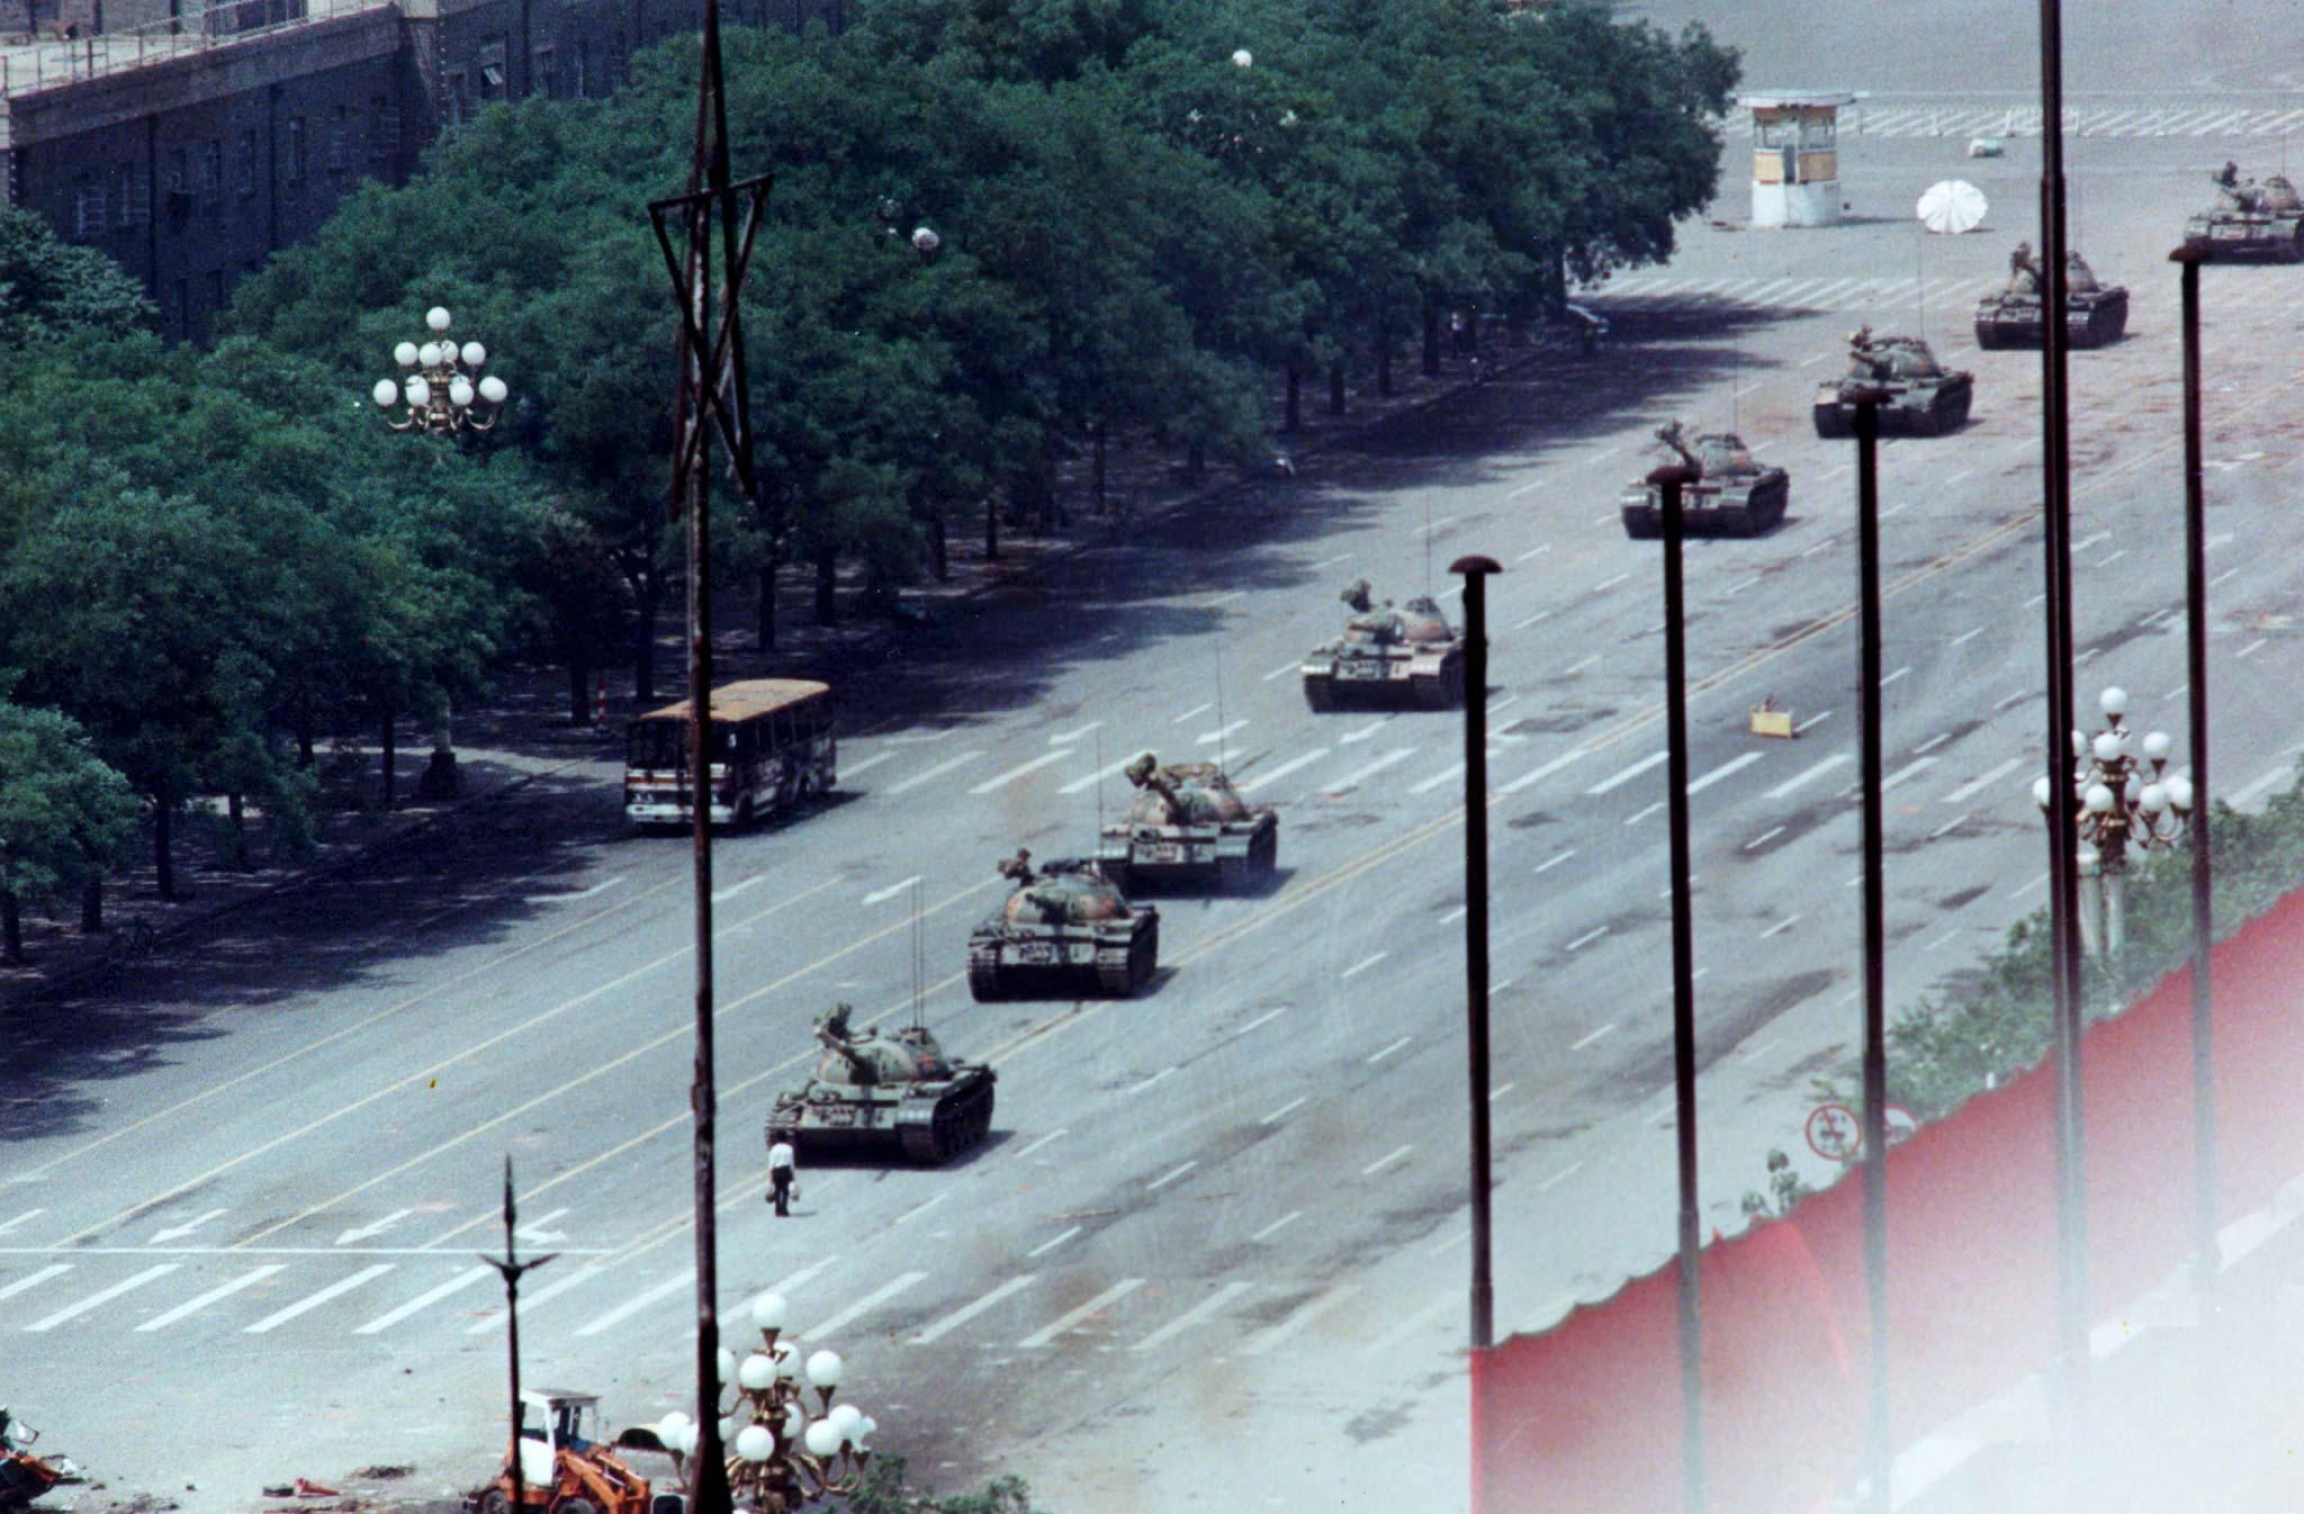 A man defiantly stands in front of a line line of tanks.